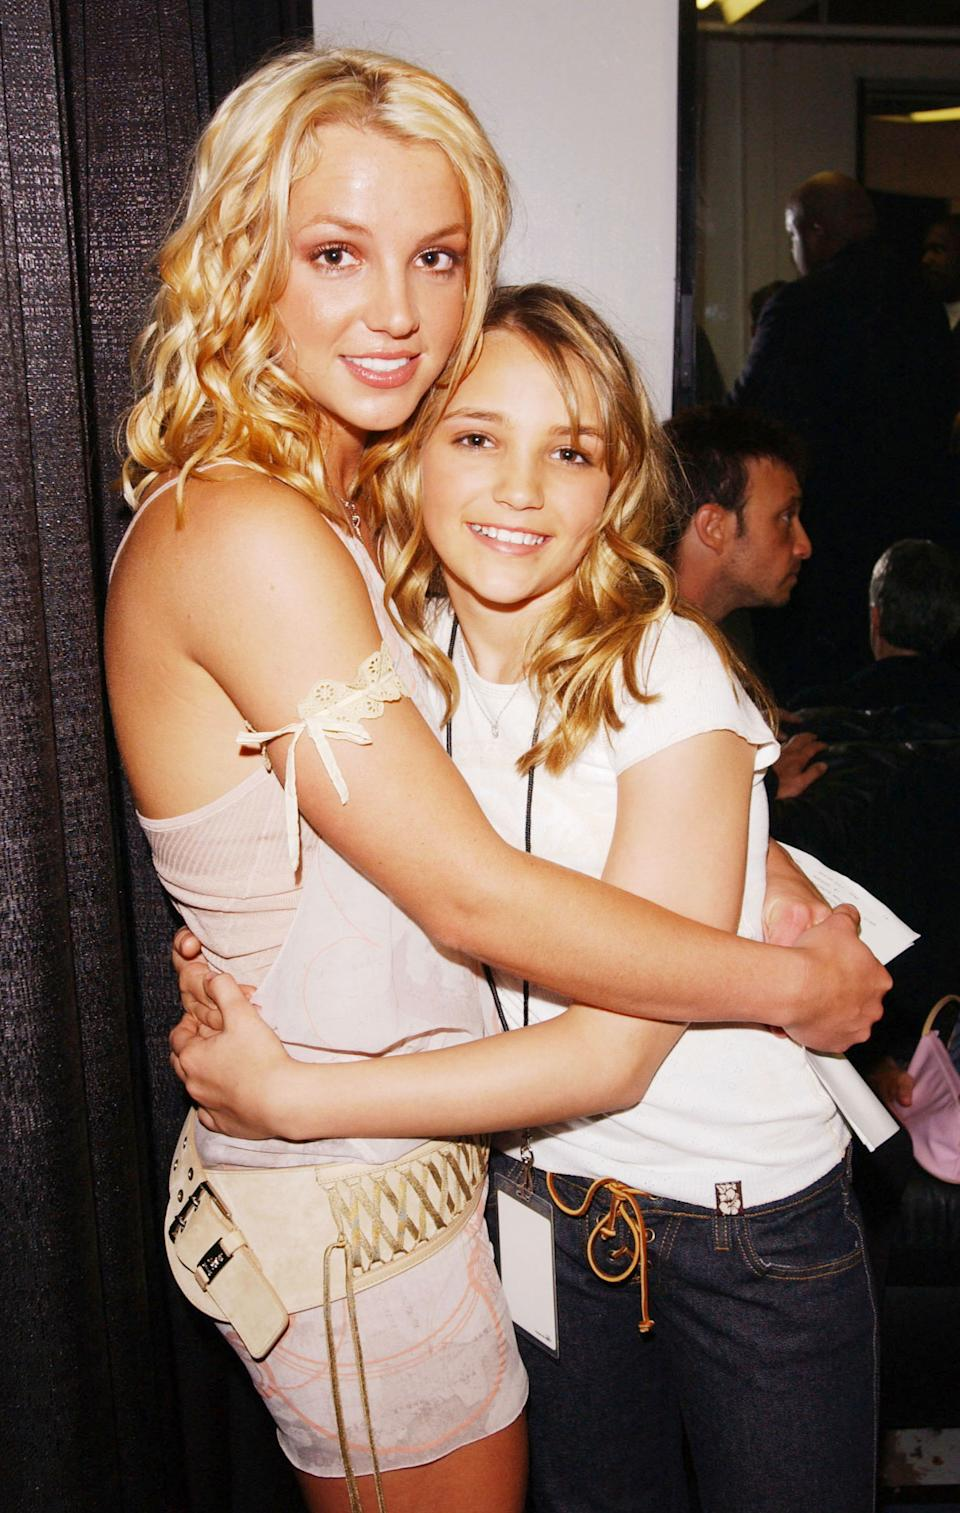 SANTA MONICA, CA - APRIL 12:  Britney and Jamie Lynn Spears during Nickelodeon's 16th Annual Kids' Choice Awards at the Barker Hangar April 12, 2003 in Santa Monica, California.  (Photo by Frank Micelotta/Getty Images)